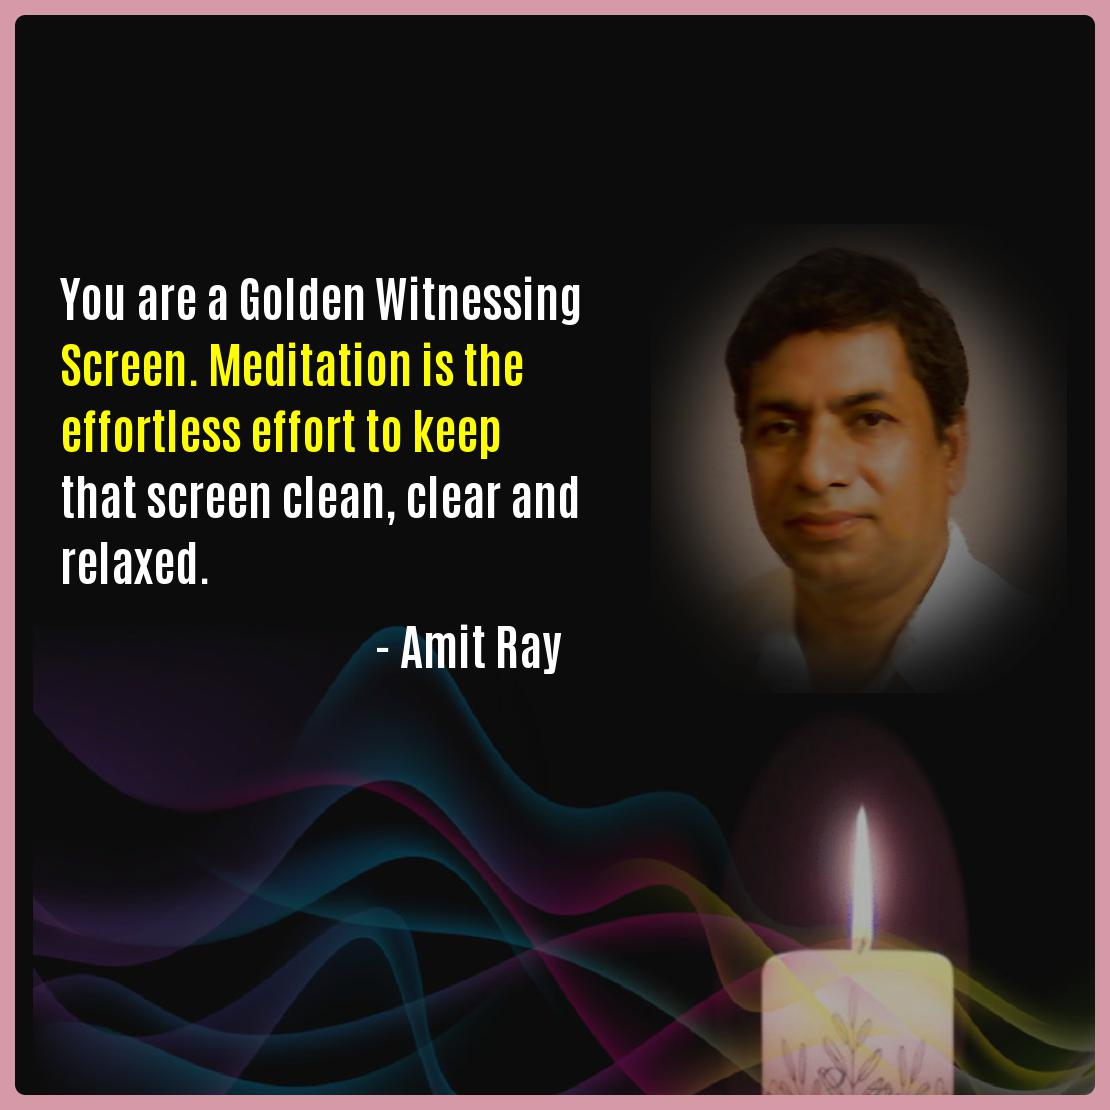 You are a Golden Witnessing Screen. Meditation is the effortless effort to keep that screen clean, clear and relaxed. -- Amit Ray